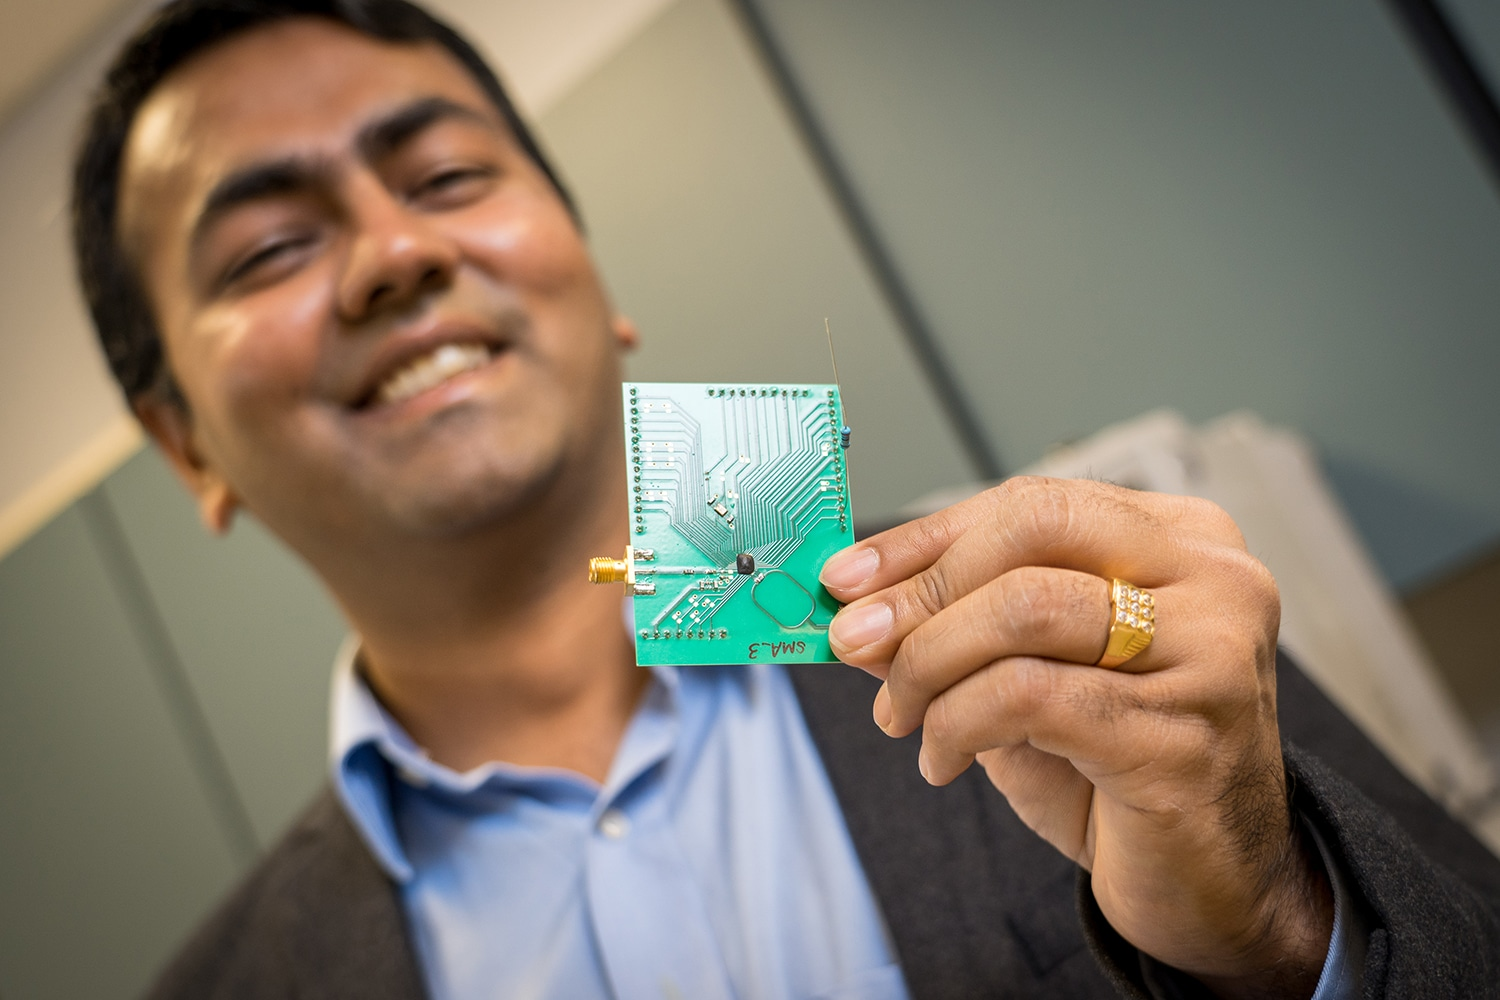 New Wi-Fi chip for the IoT devices consumes 5,000 times less energy - Tech Explorist